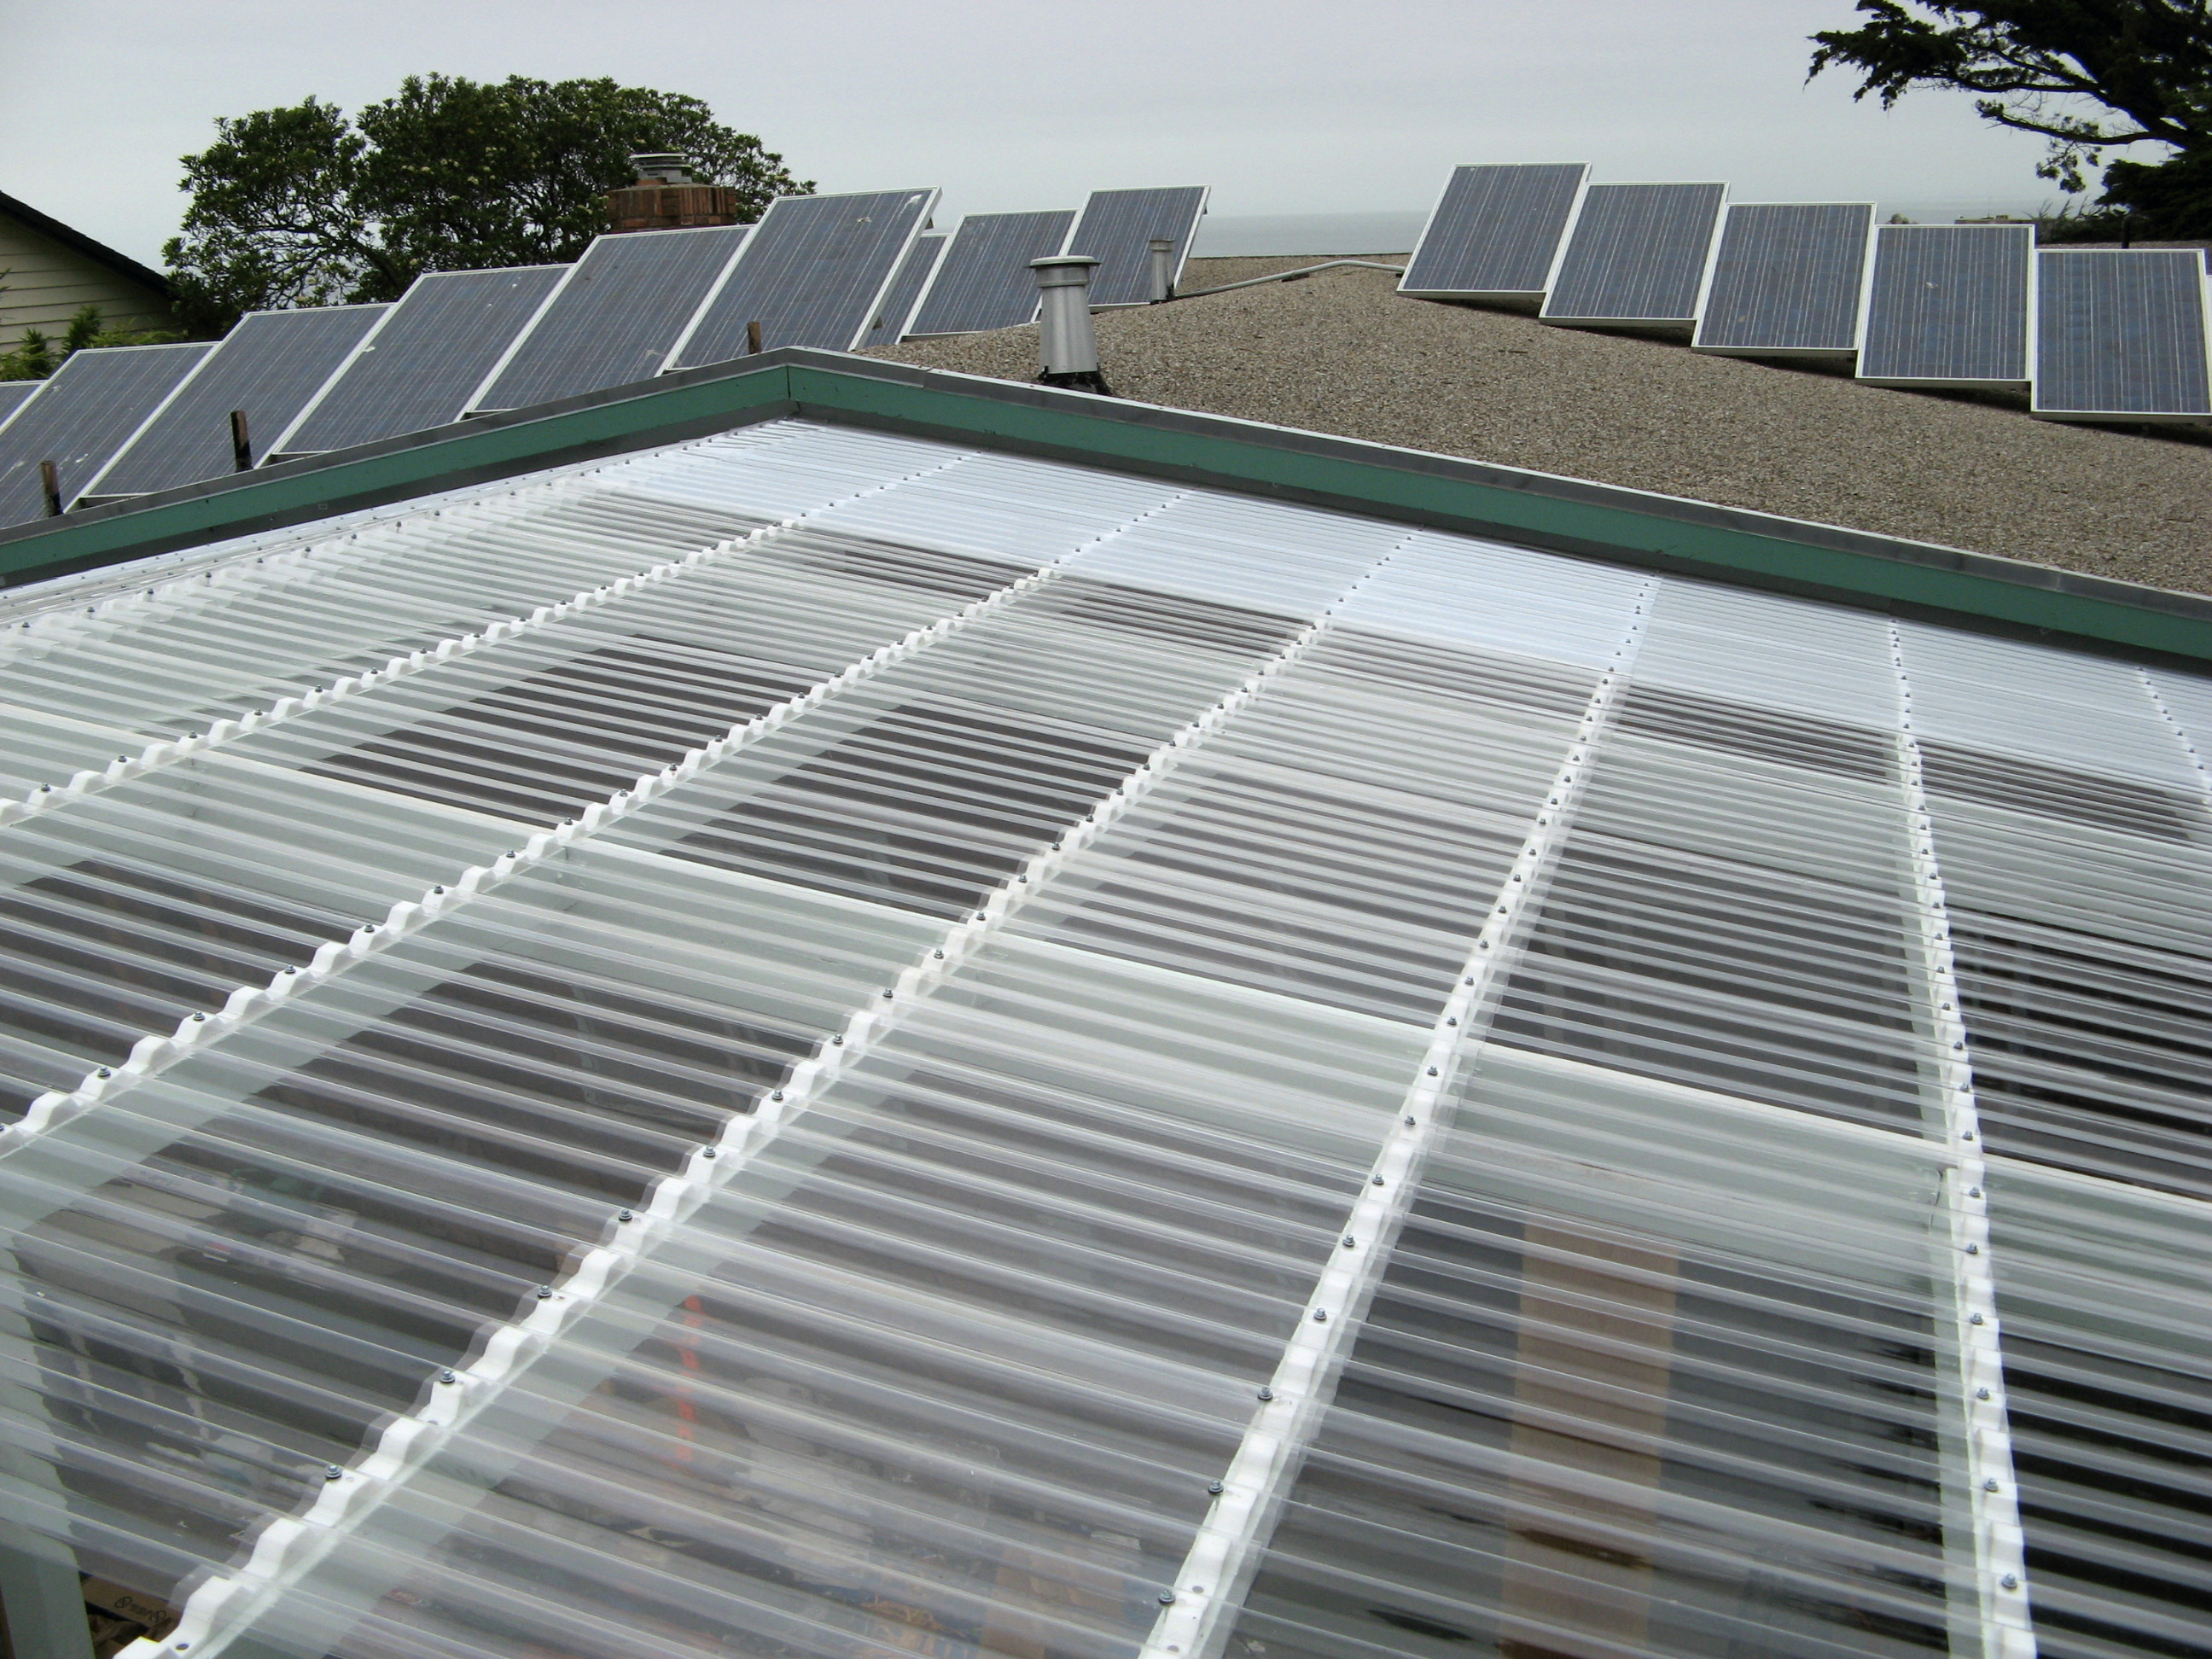 Wonderful Solar Panels/greenhouse Roof AFTER